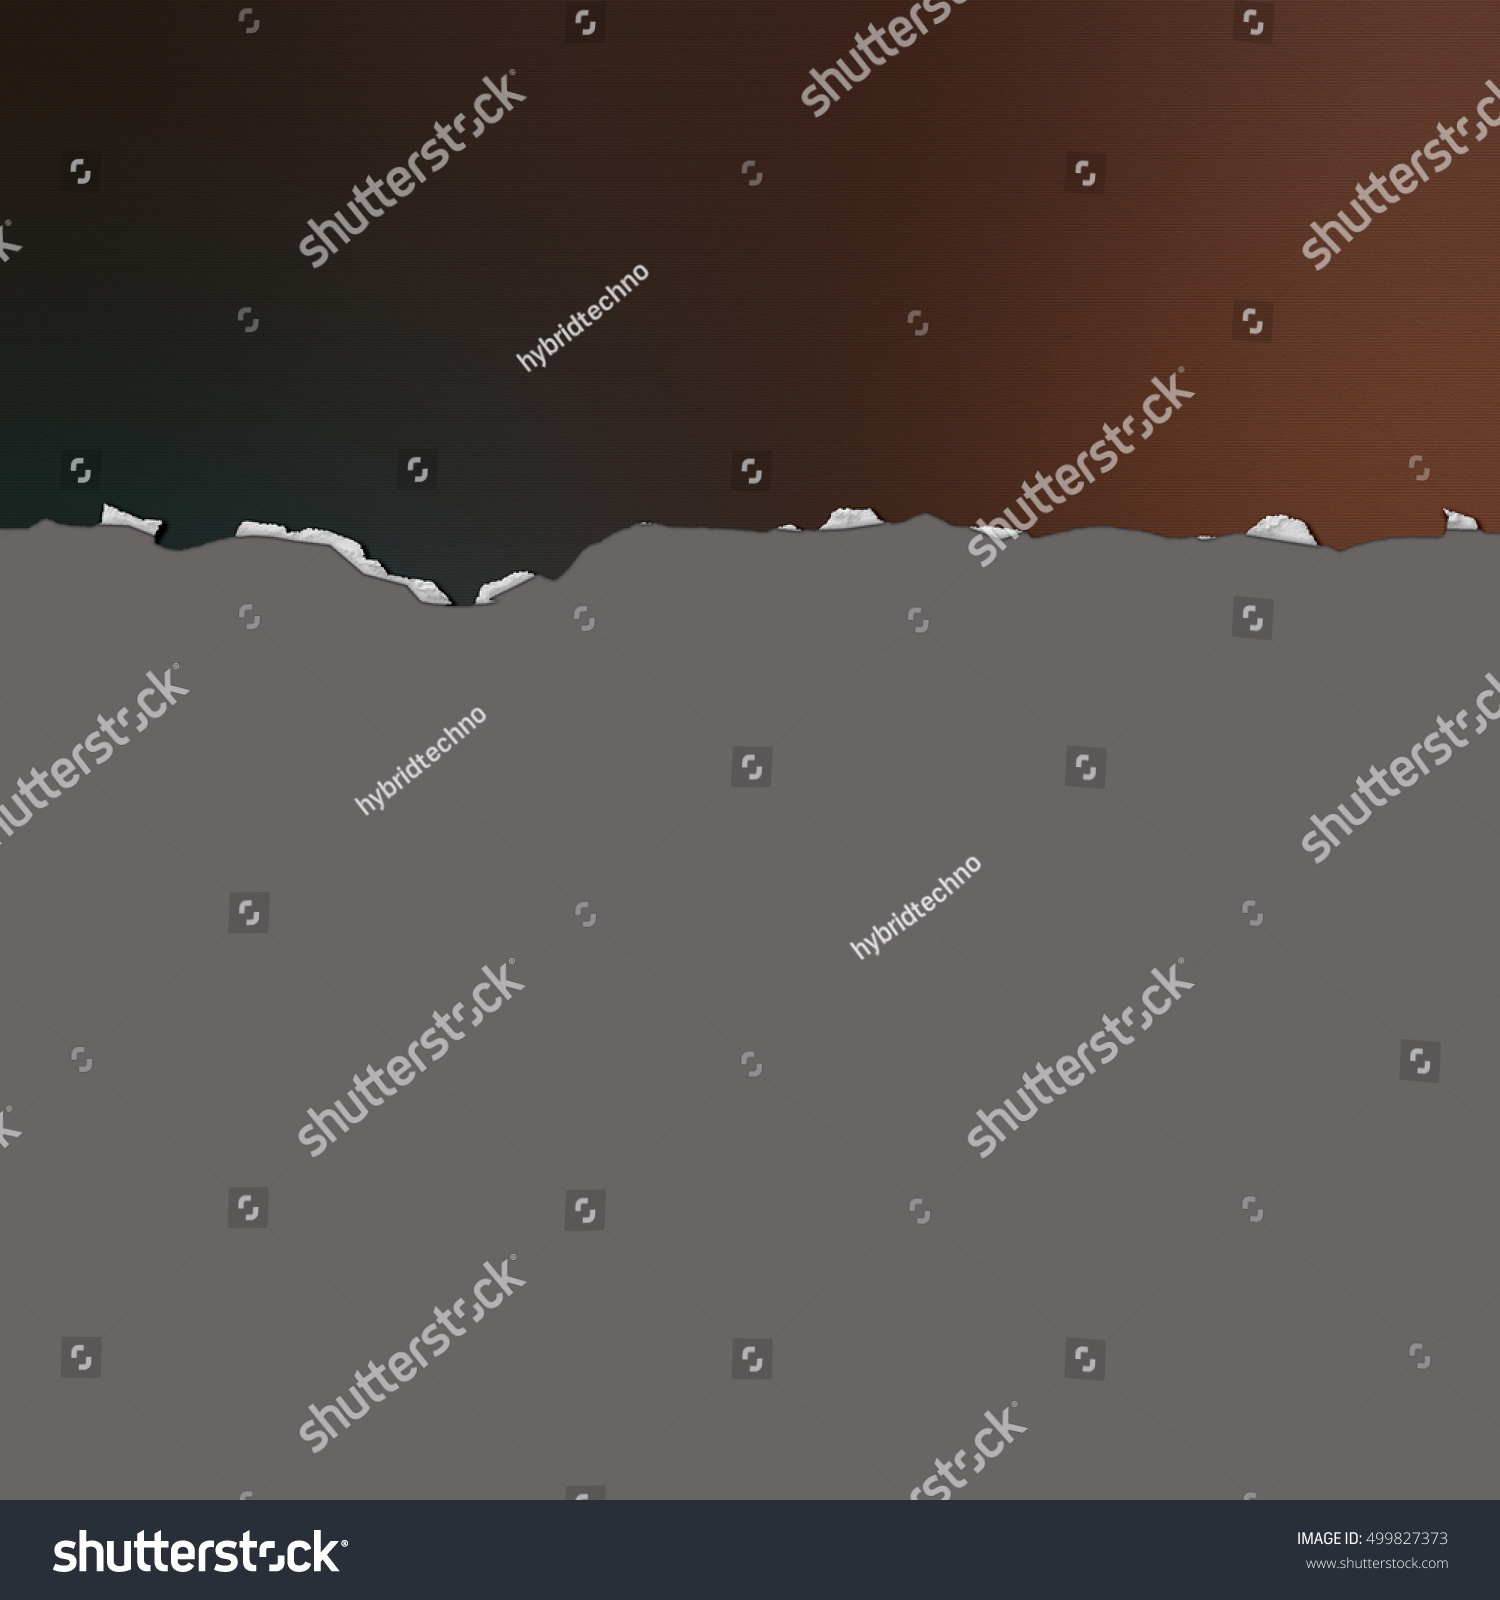 background backgrounds abstract advertisements - photo #40